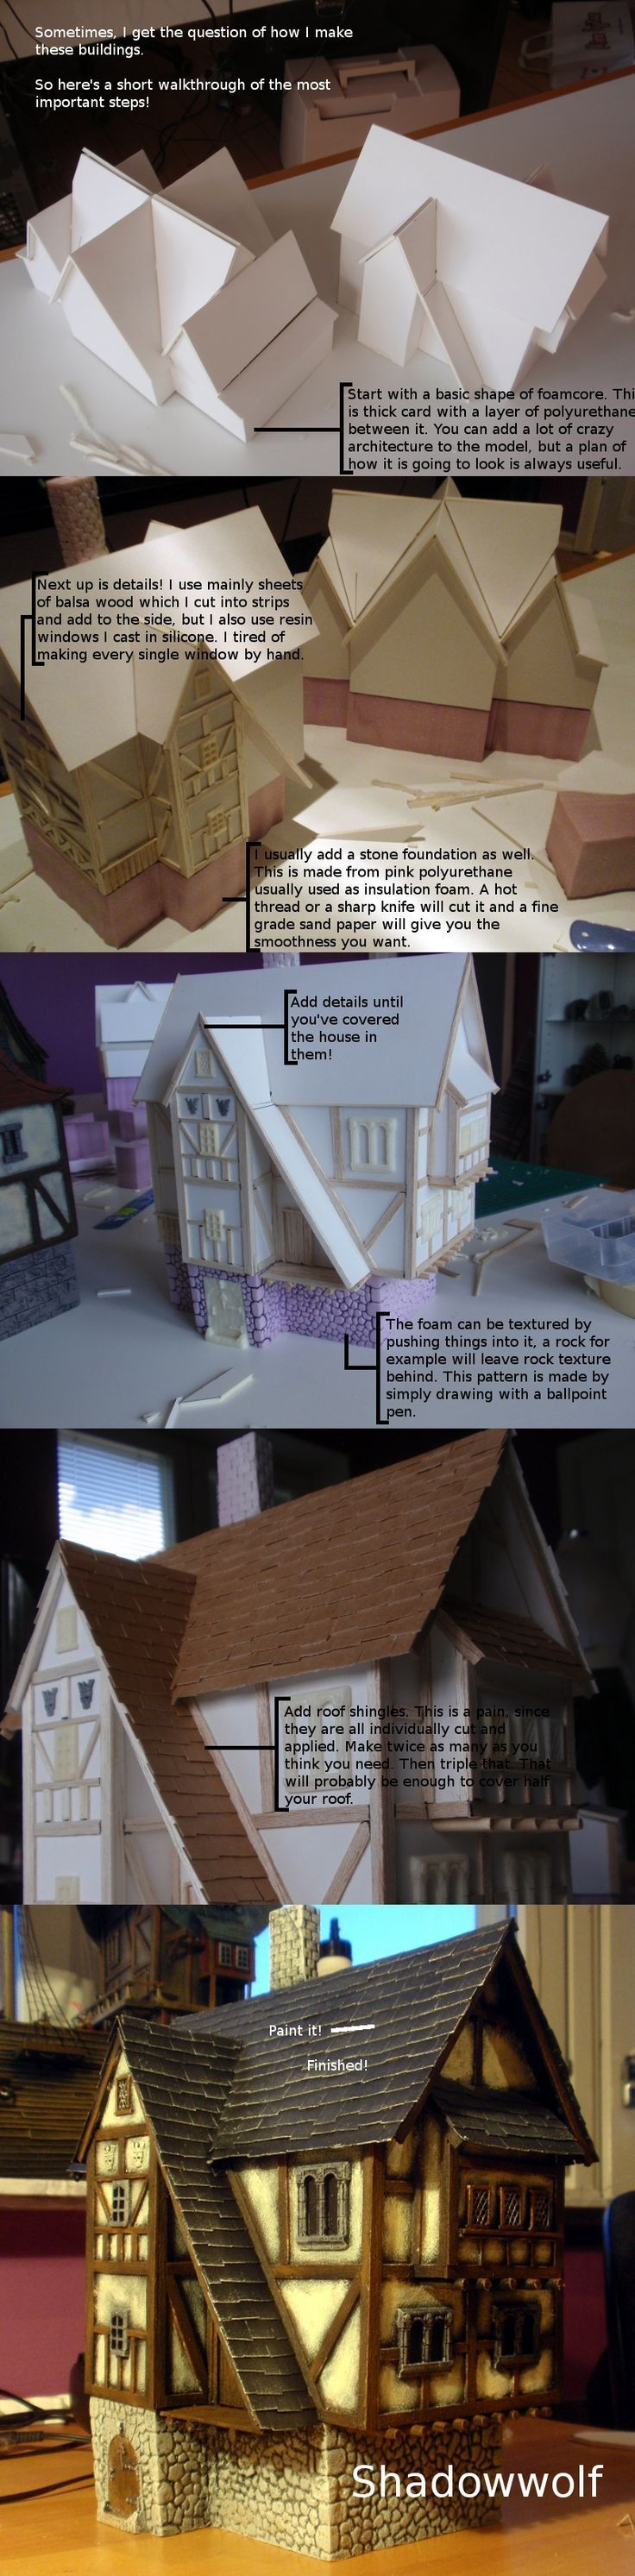 """Lol """"Make twice as many as you think you need. Then triple that. That will probably be enough to cover half your roof."""""""